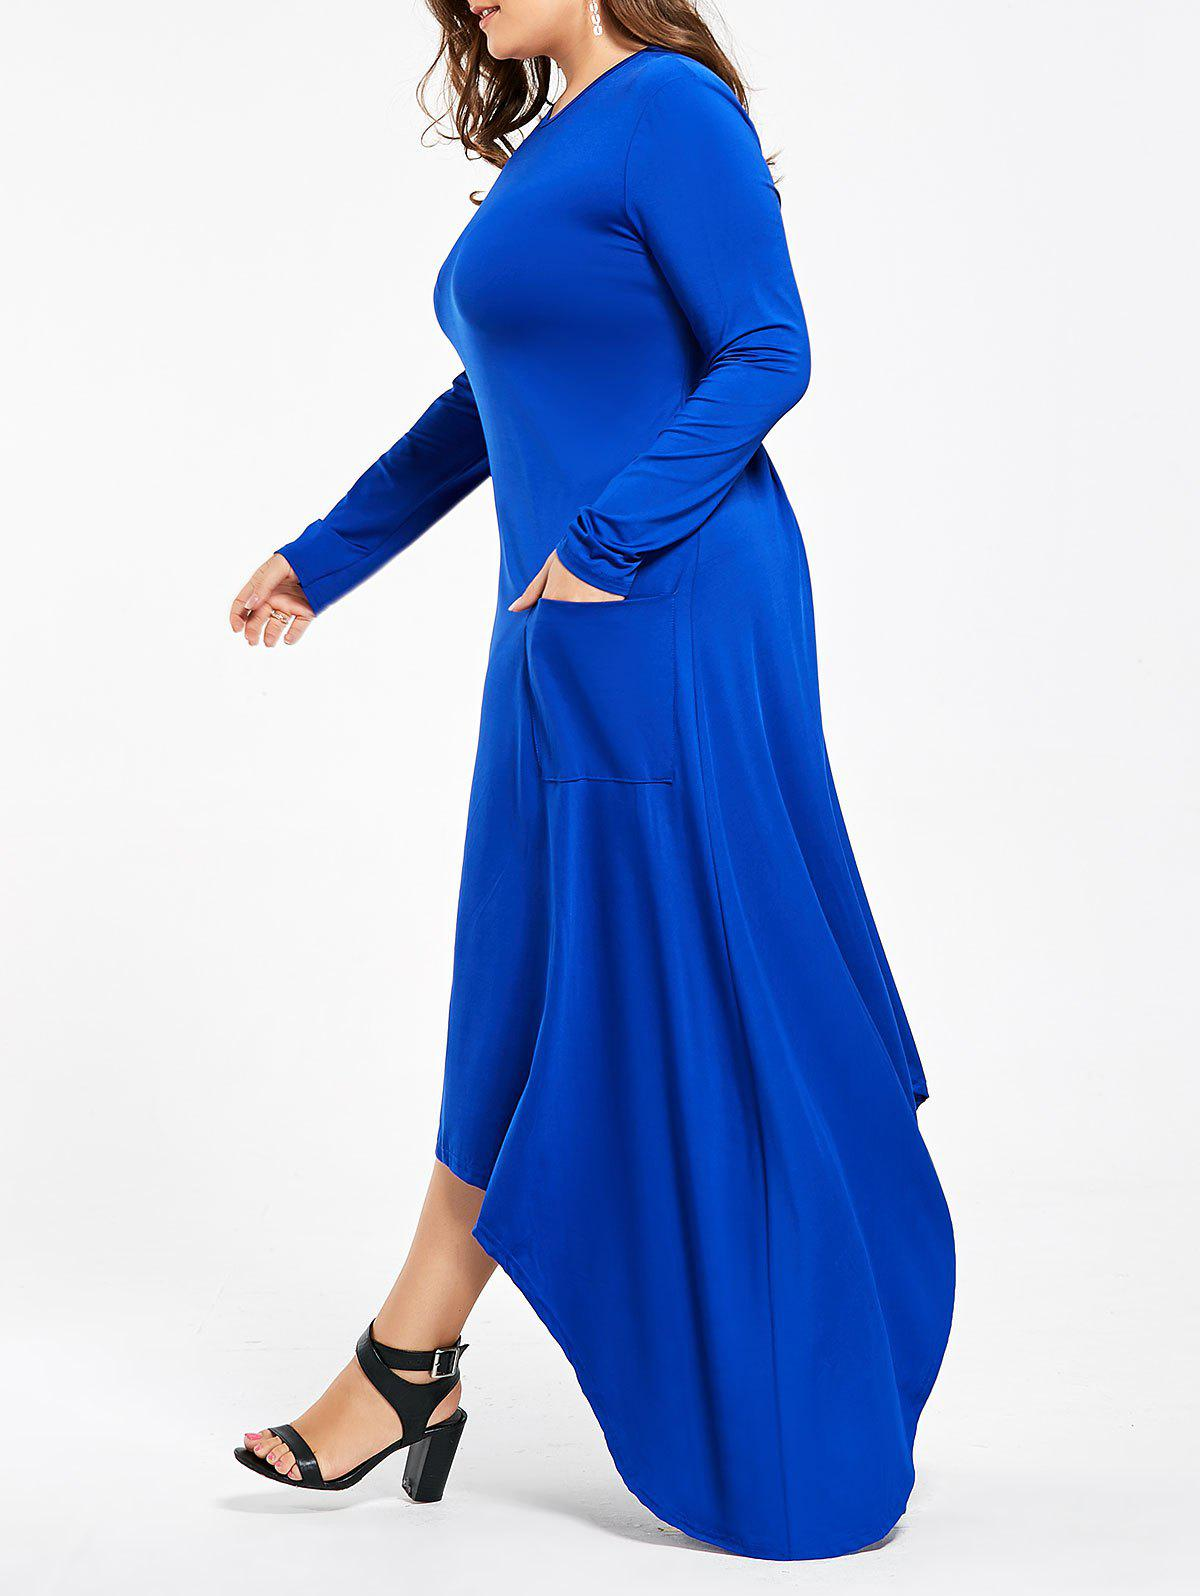 Plus Size Maxi Long Sleeve Asymmetric Dress with Pockets plus size pockets design maxi baggy dress